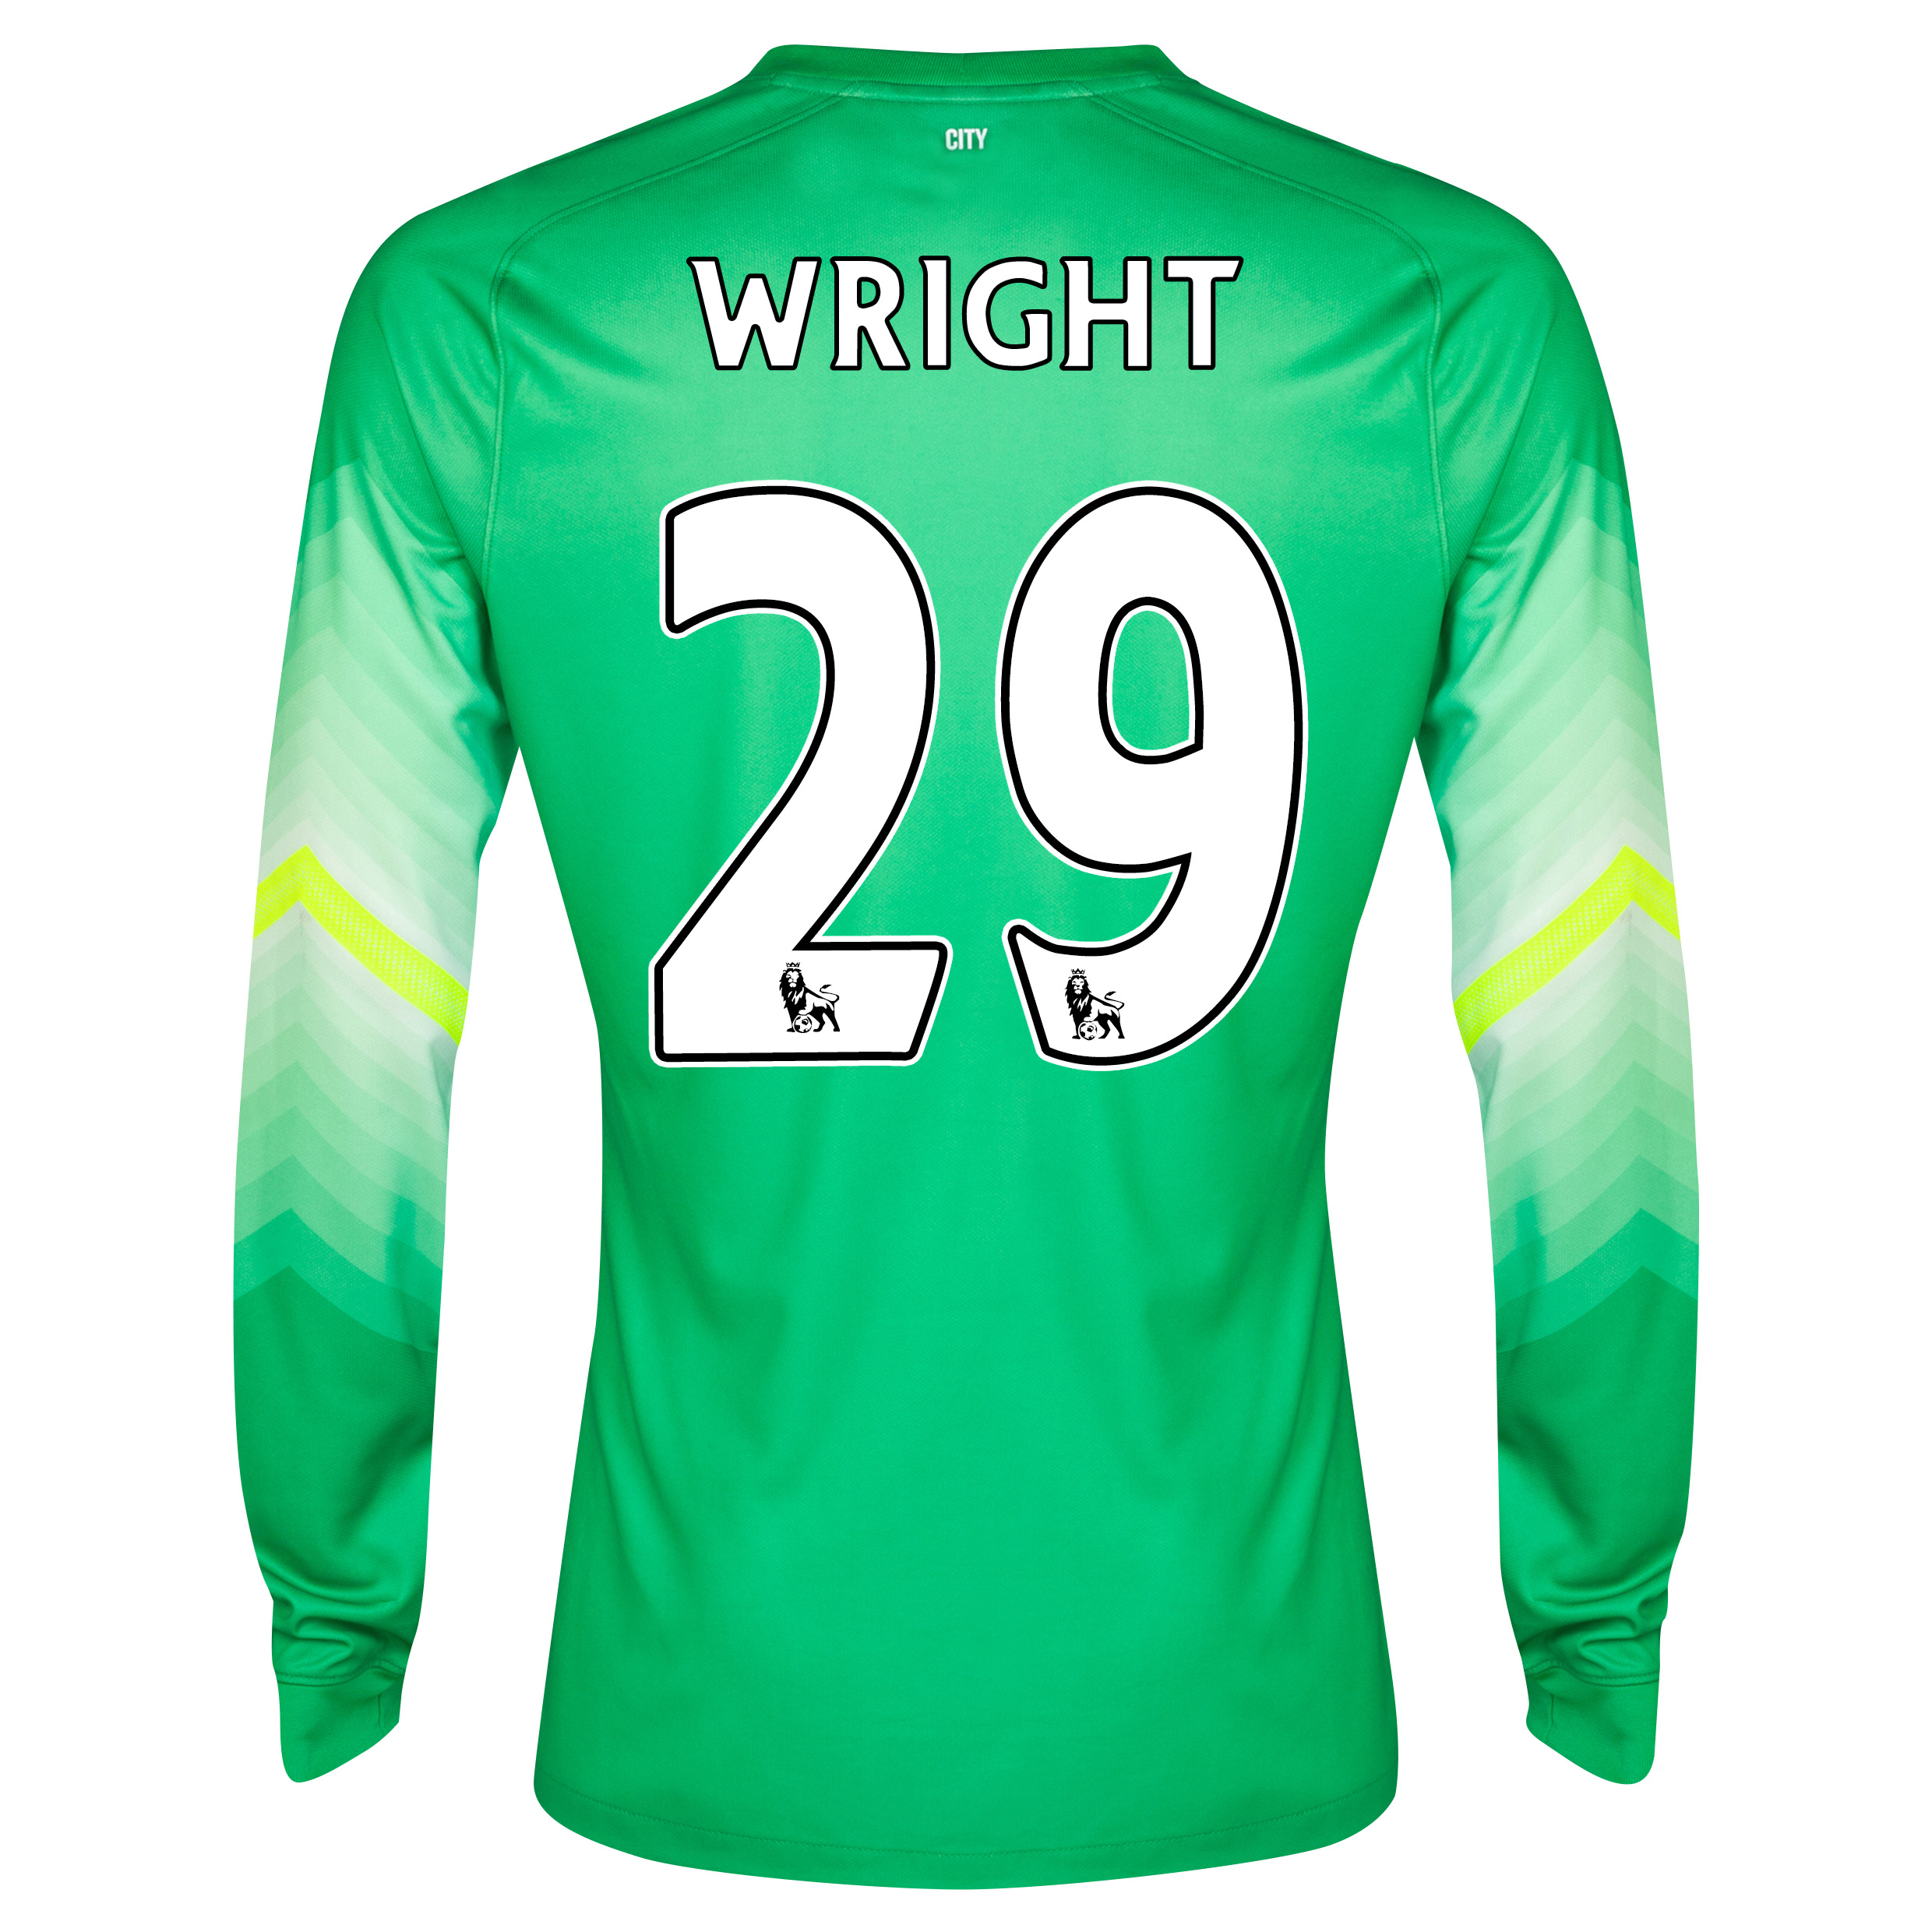 Manchester City Goalkeeper Shirt 2014/15 Lt Green with Wright 29 printing